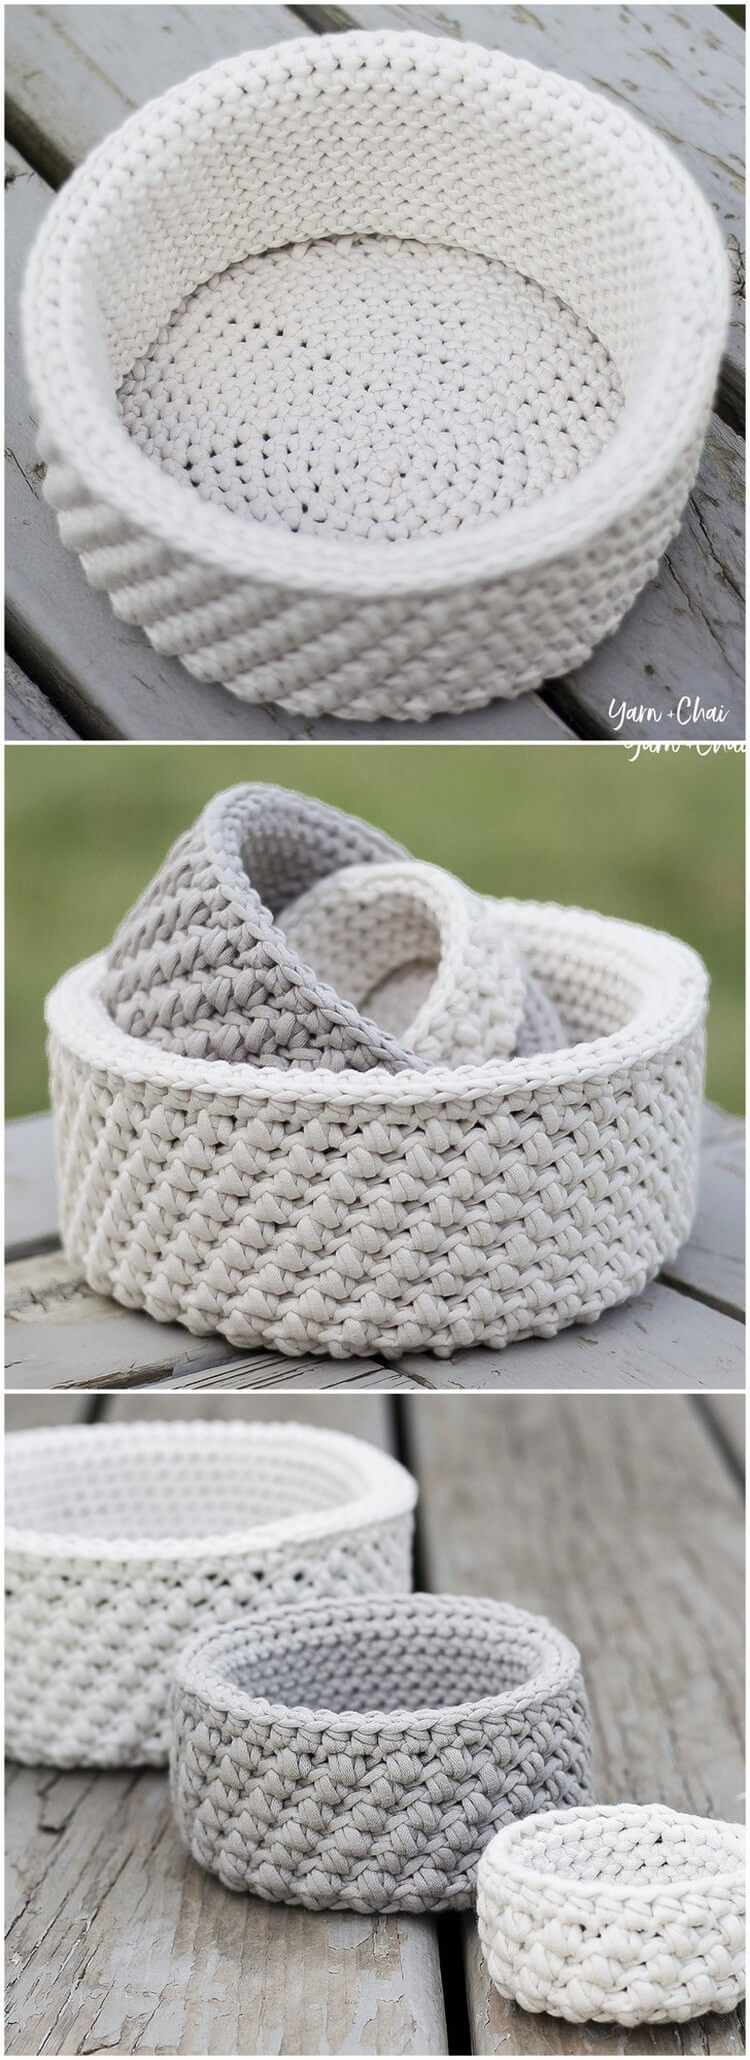 Crochet Basket Pattern (20)